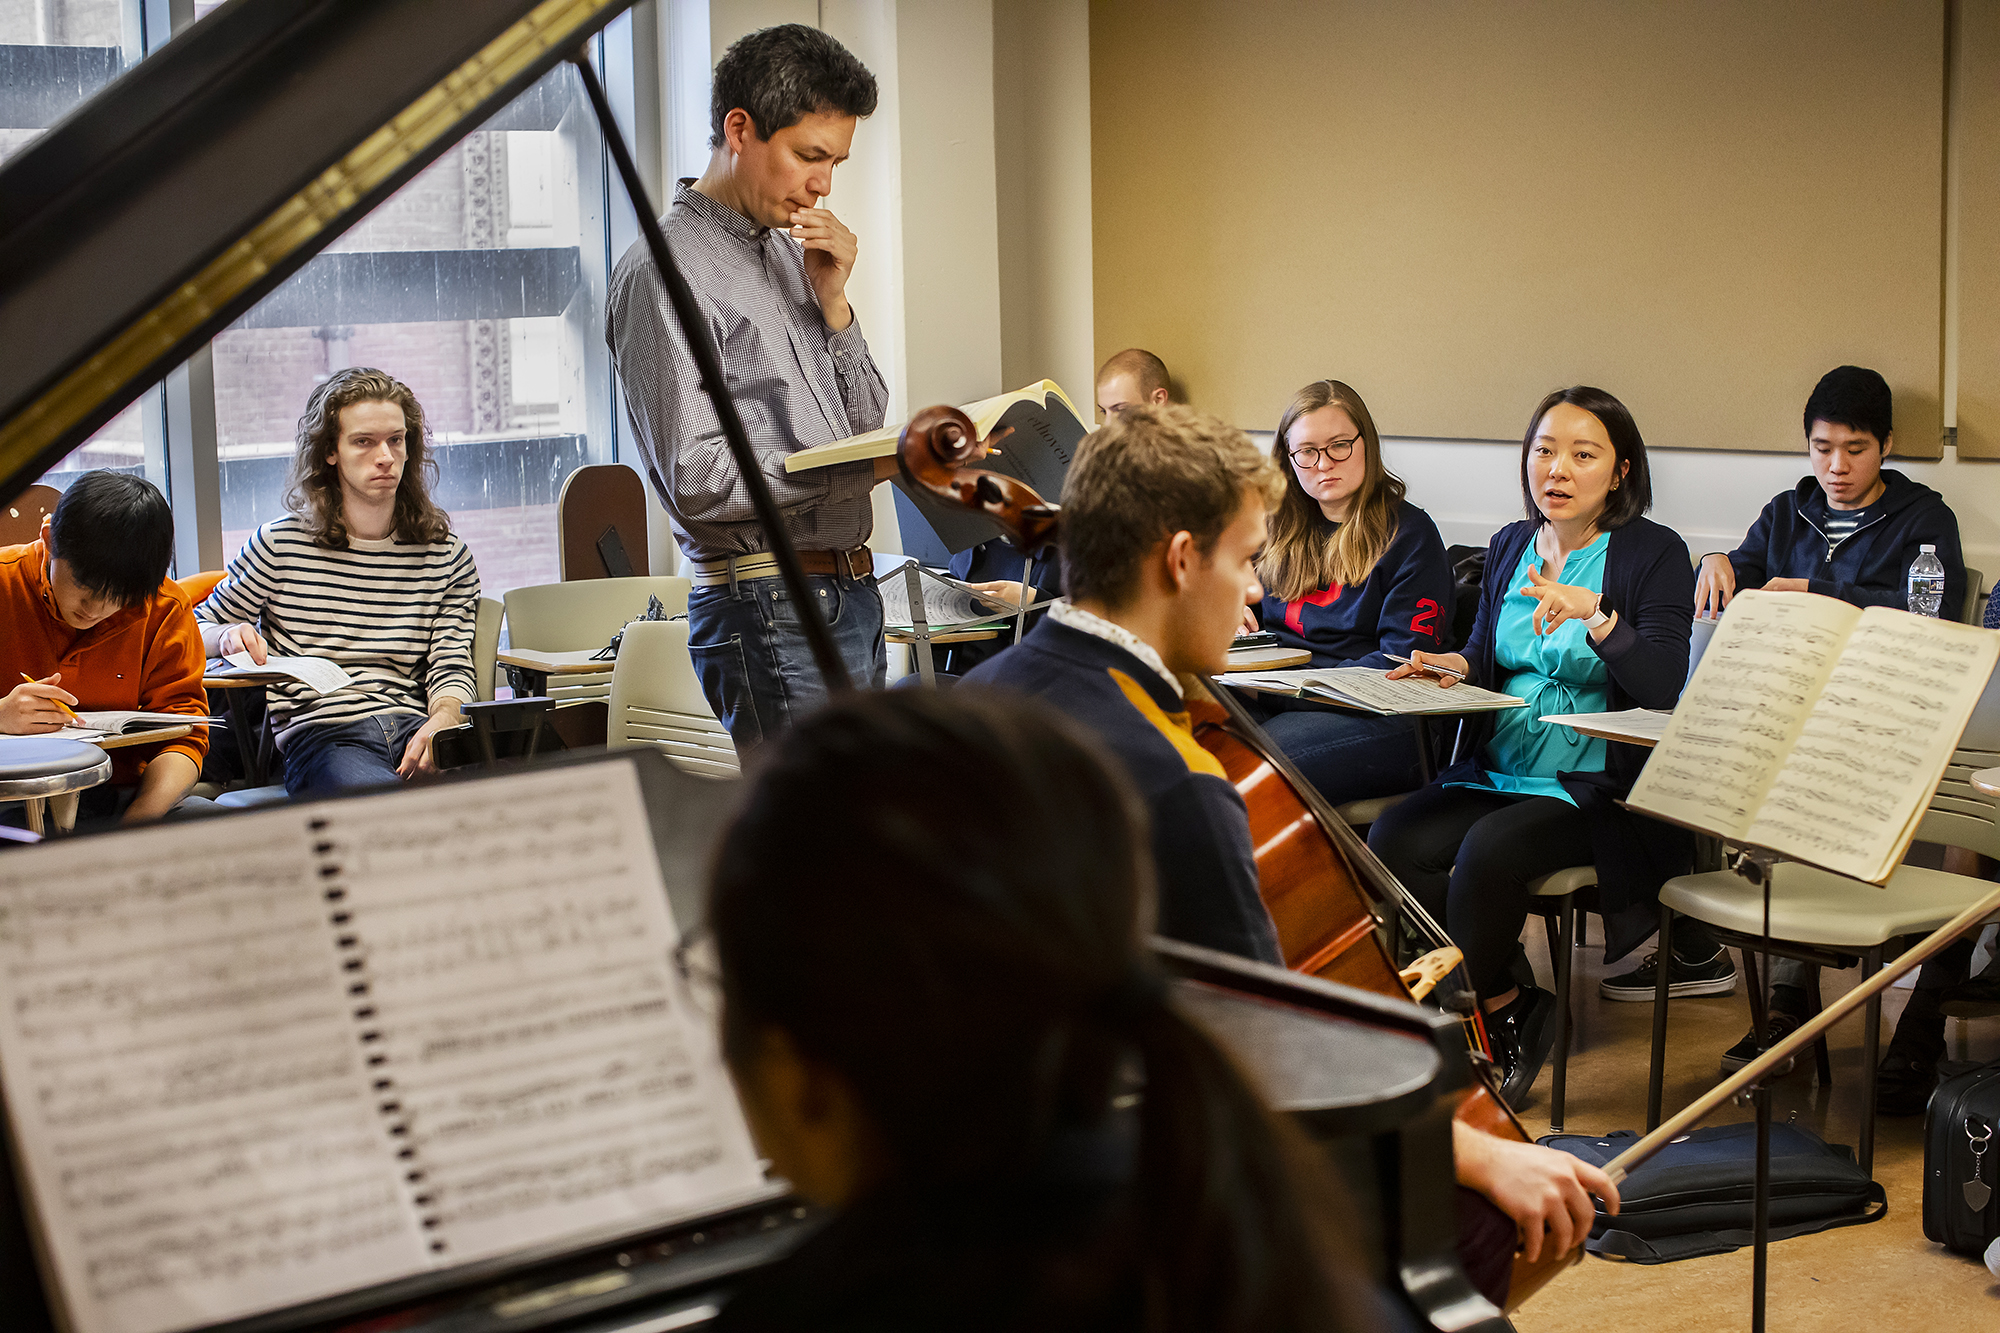 Musical merger of academics and performance | Penn Today